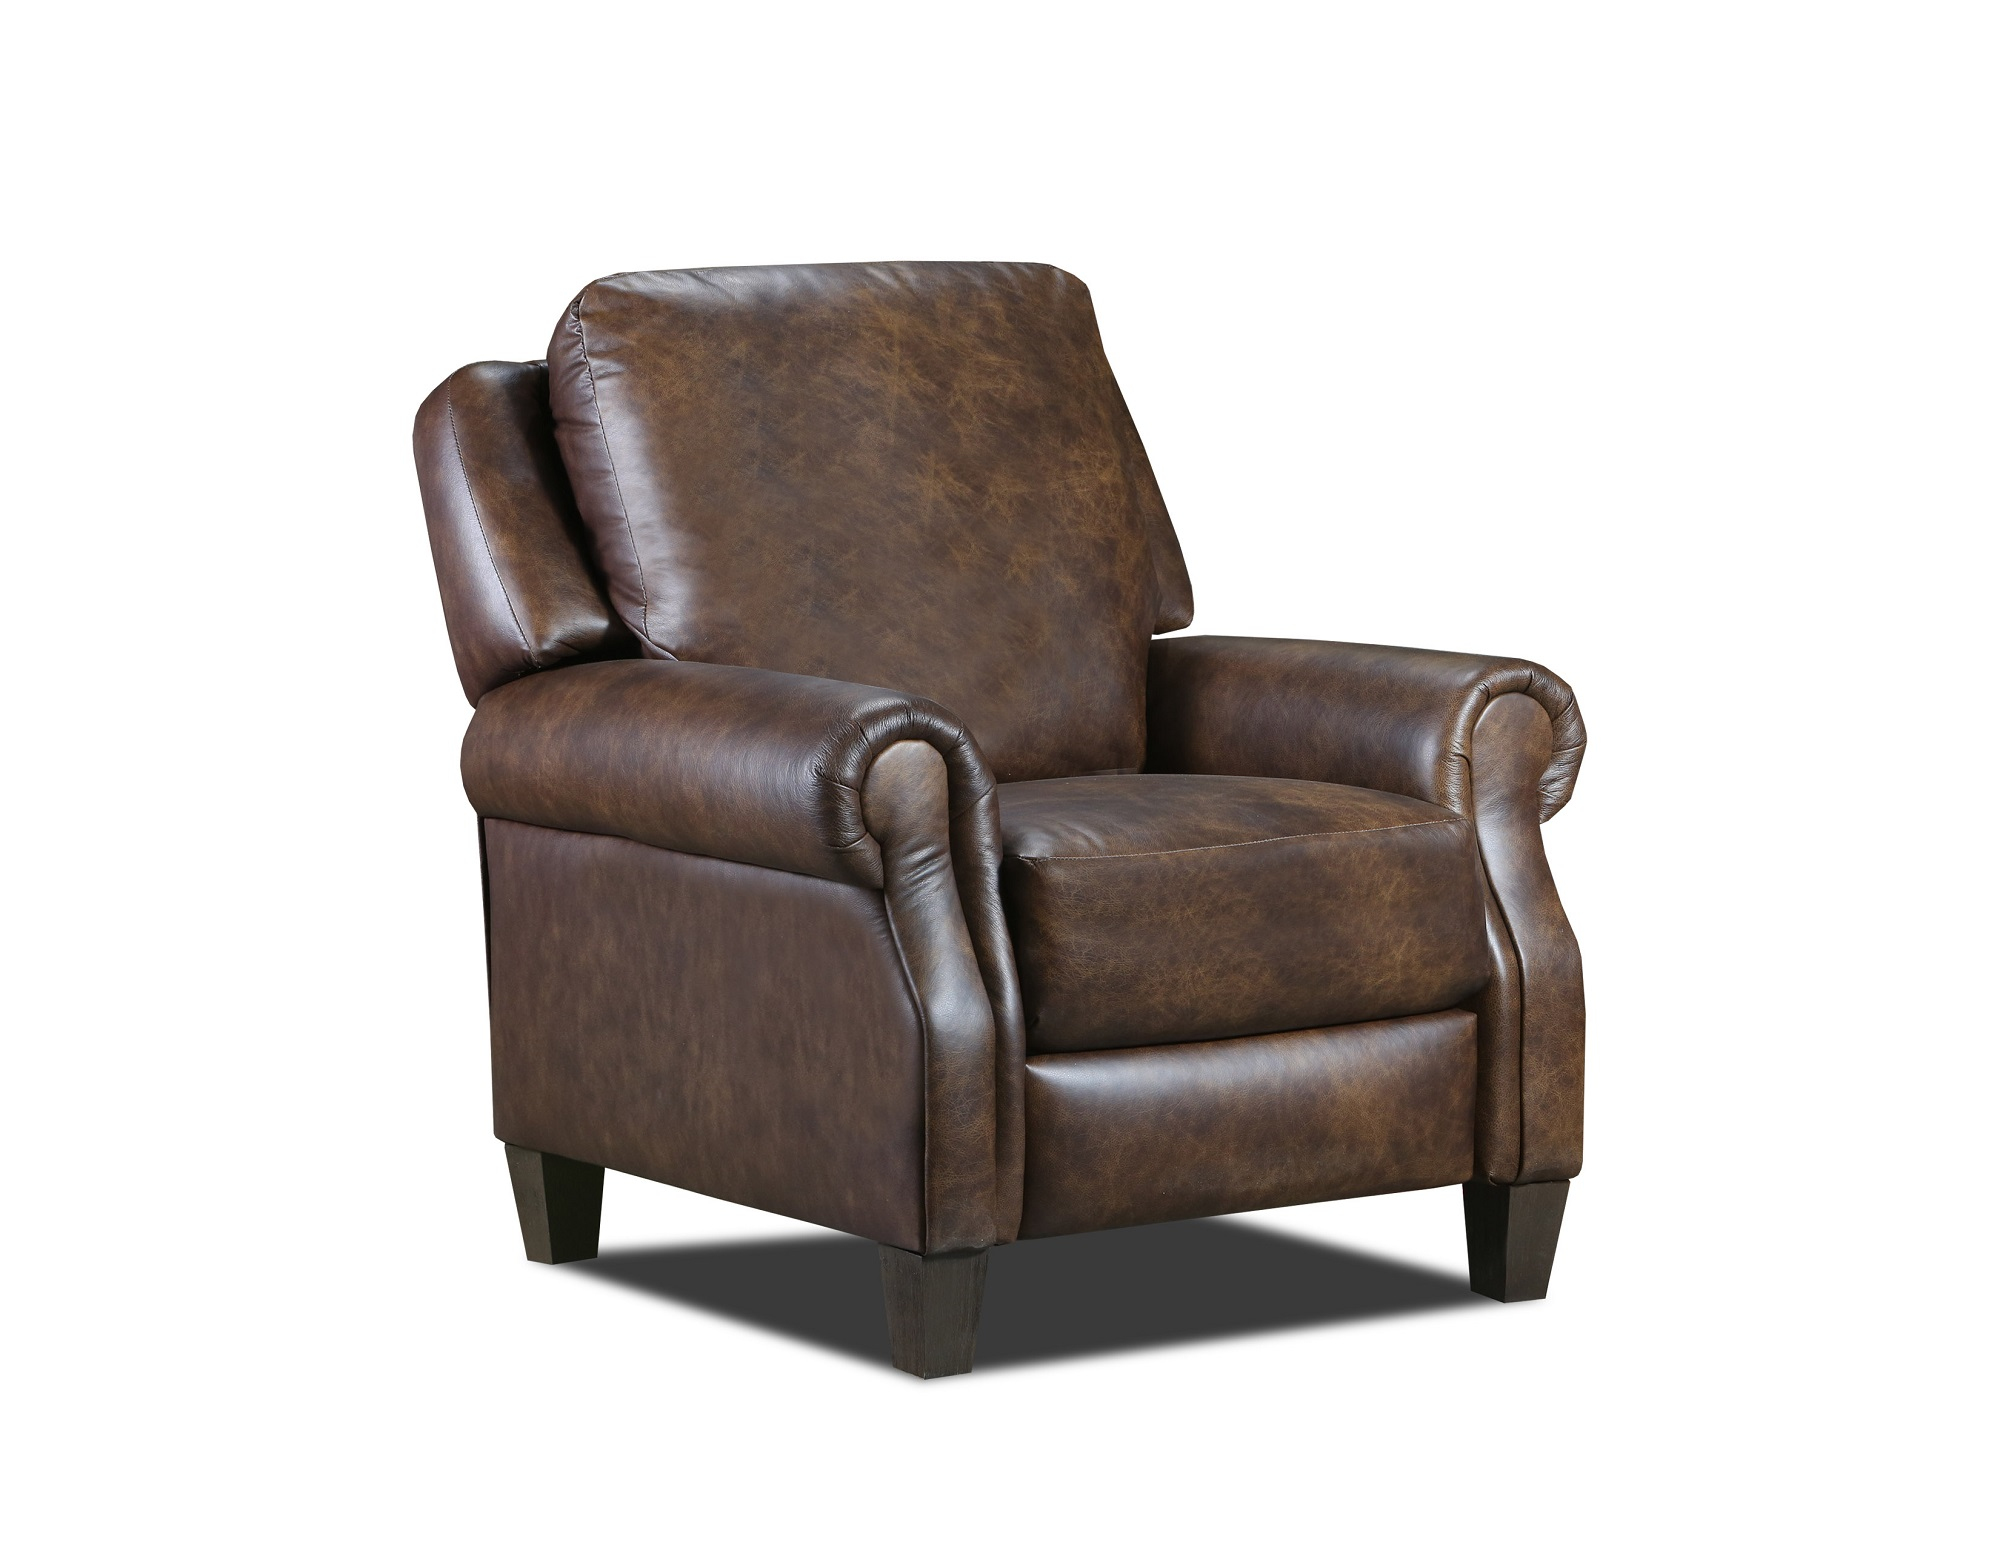 1644 Key Largo Recliner Image